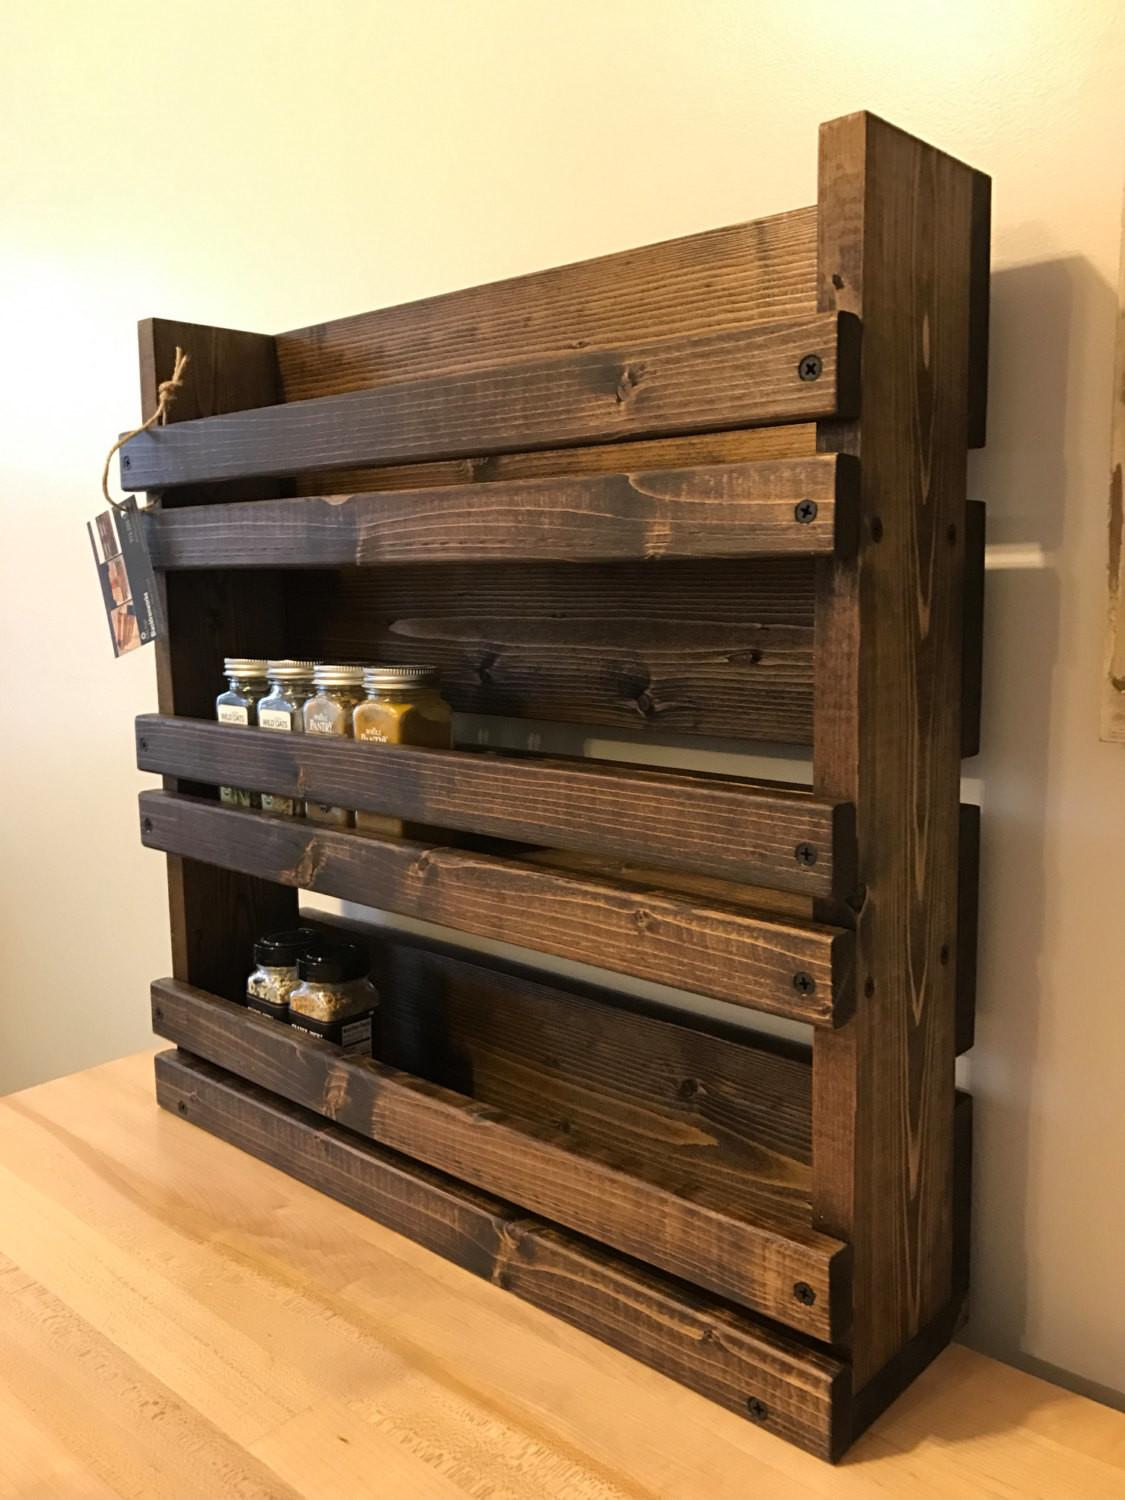 Spice Rack Rustic Shelves Kitchen